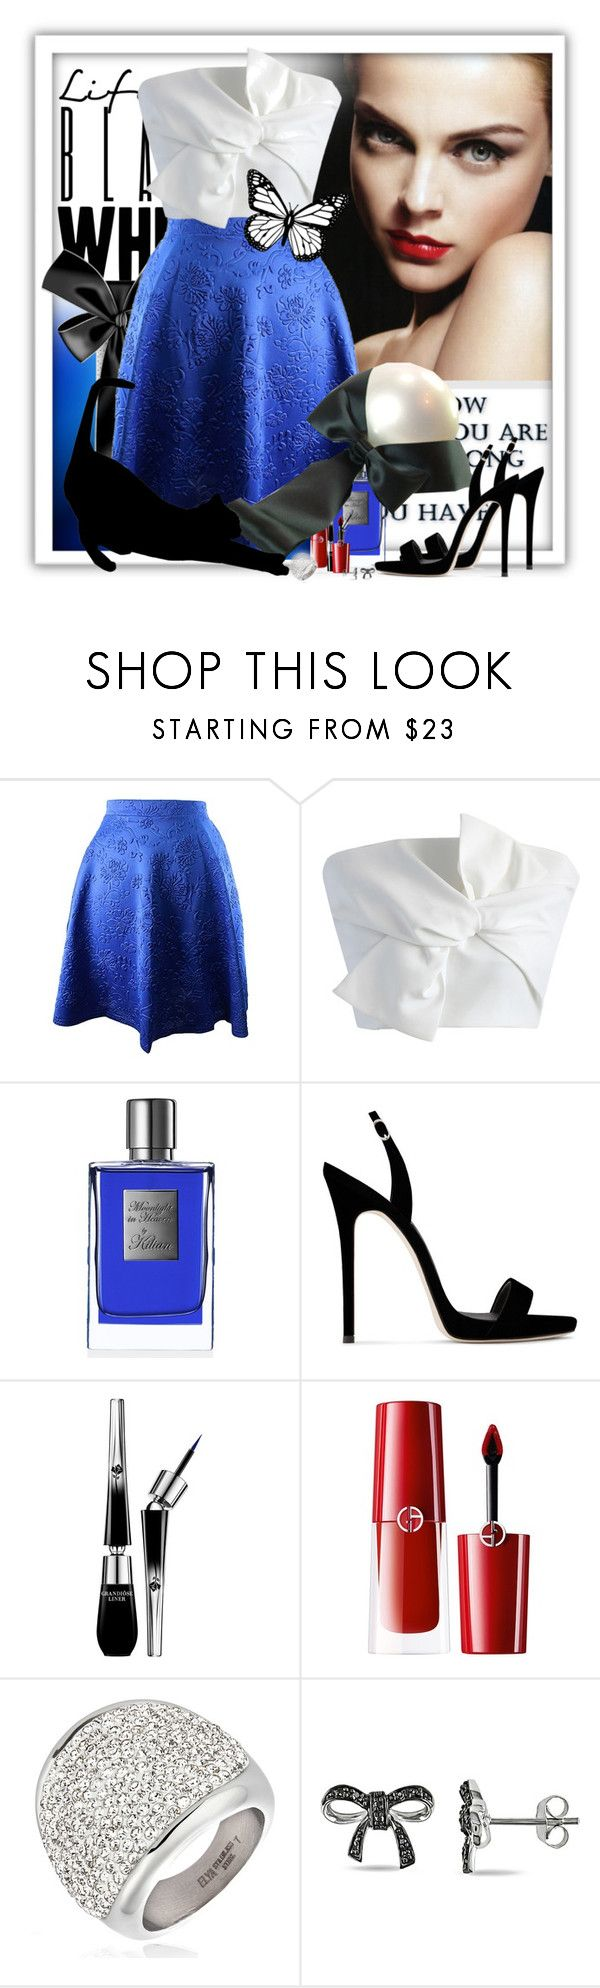 """Take A Bow 🎀"" by pusja76 ❤ liked on Polyvore featuring Chicwish, Kilian, Giuseppe Zanotti, Lancôme, Giorgio Armani, Chanel, West Coast Jewelry and Miadora"